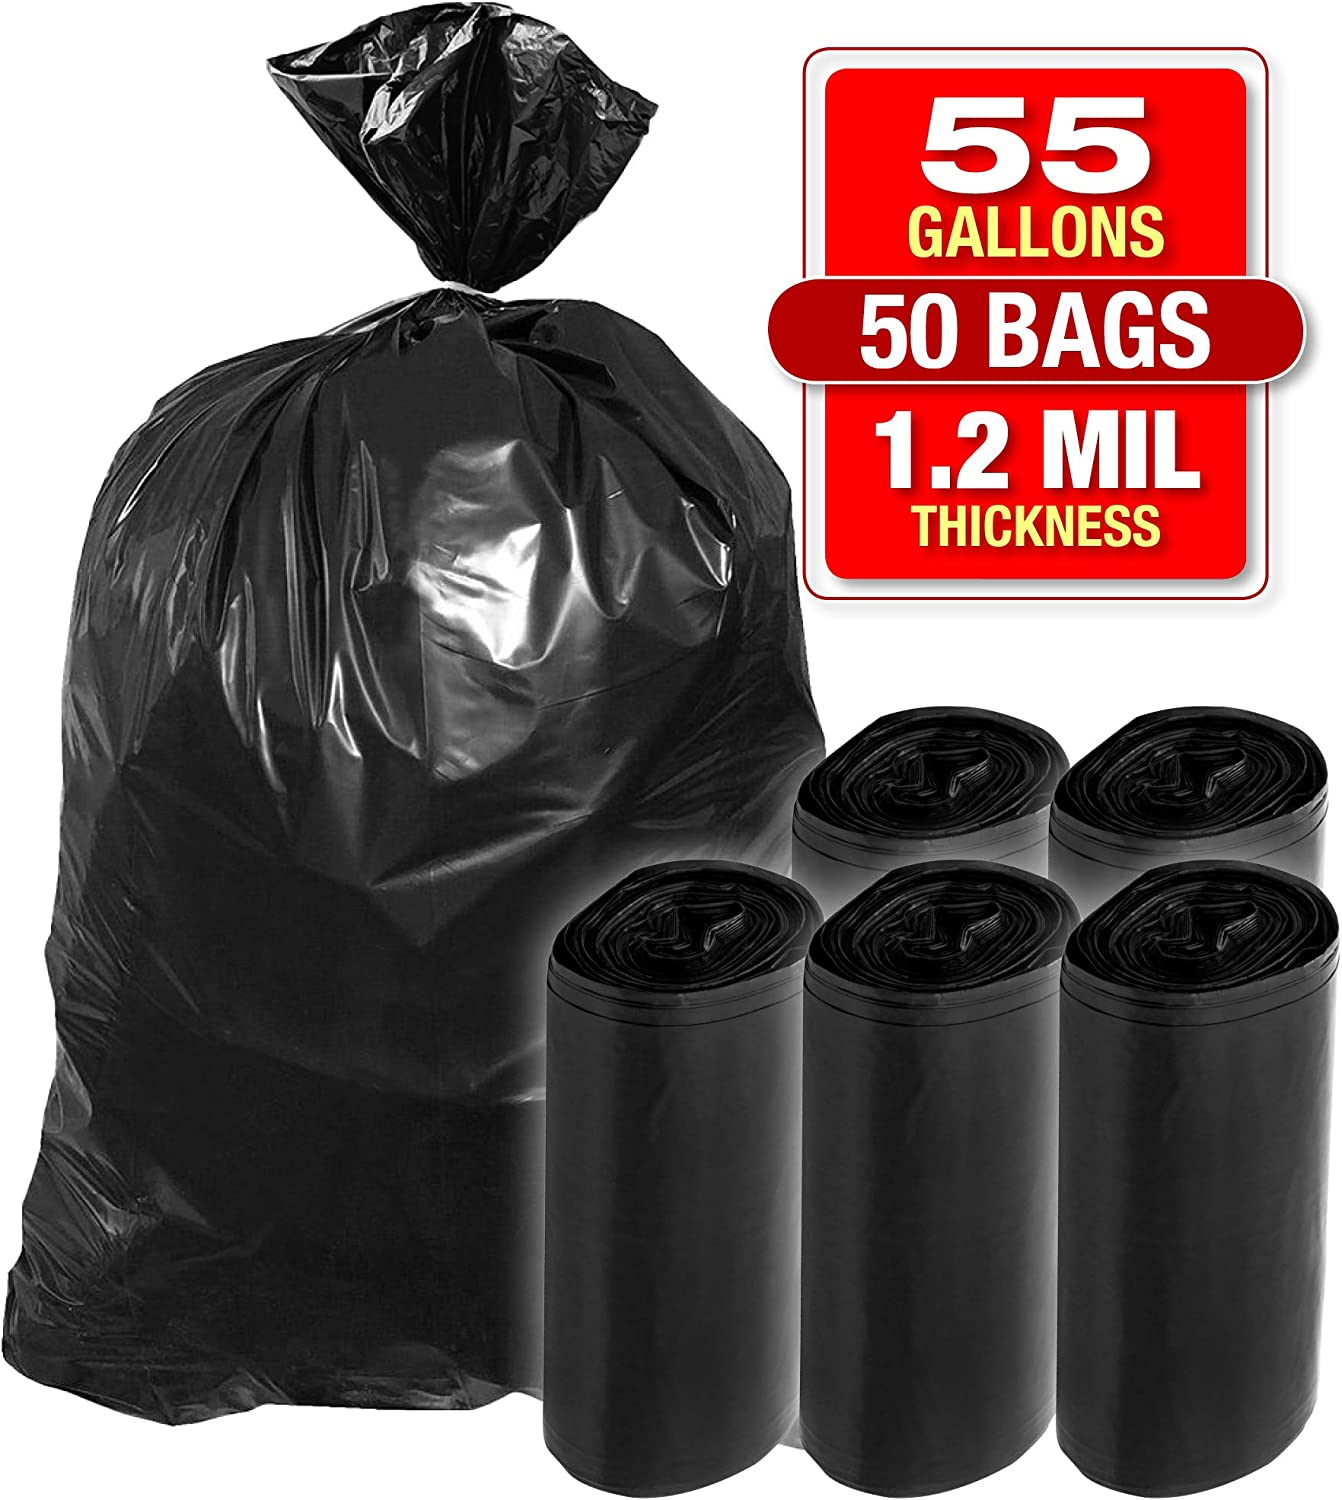 """Heavy Duty Black Trash Bags - 55 Gallon 50 PK Black Bags for Garbage, Storage - 1.2 Mil Thick, 35""""Wx55""""H Industrial Grade Trash Bags for Construction, Yard Work, Commercial Use - by Tougher Goods"""